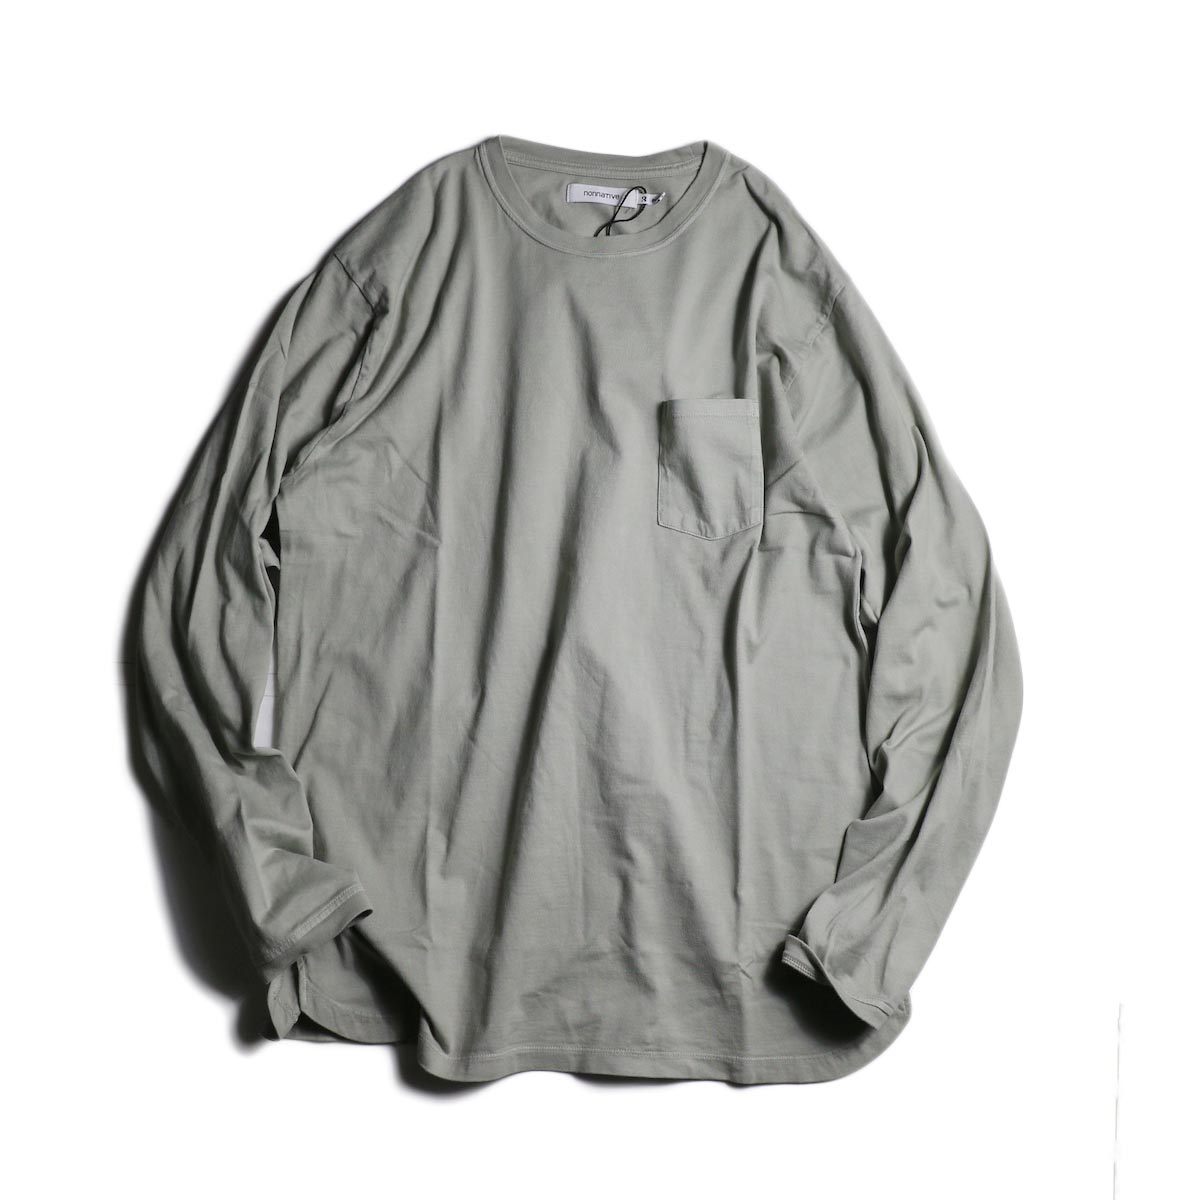 nonnative / DWELLER L/S TEE COTTON JERSEY OVERDYED (Gray)